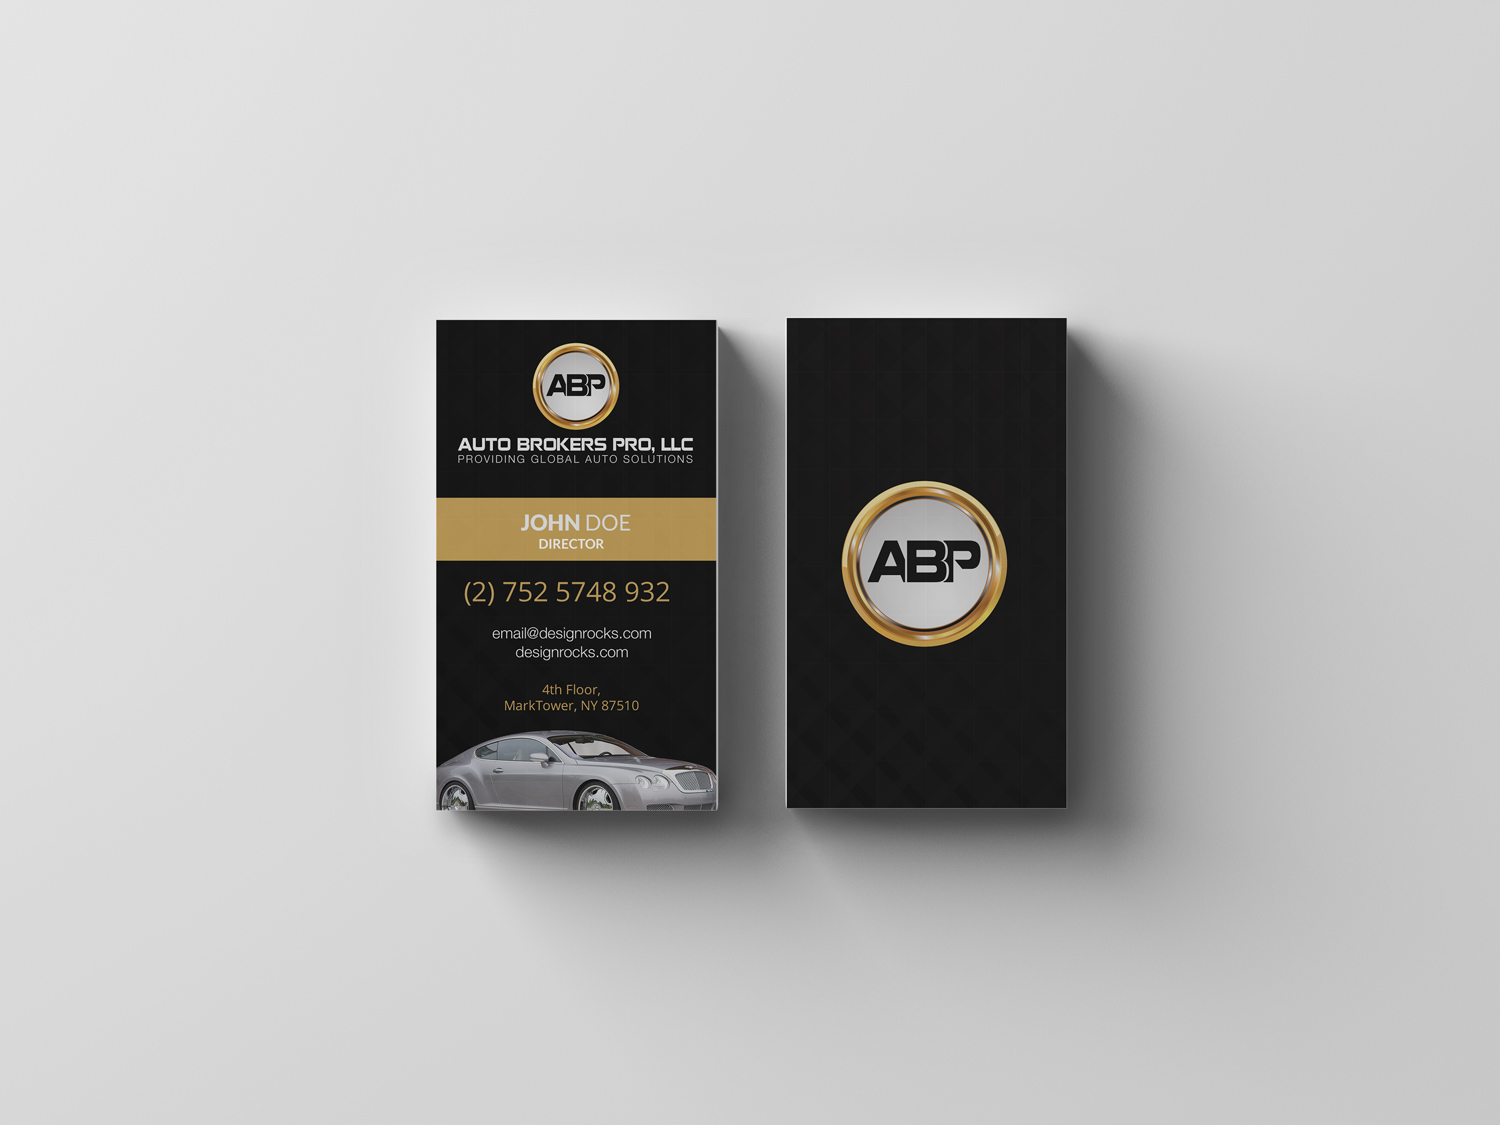 Upmarket Elegant Automotive Logo Design For Auto Brokers Pro Llc